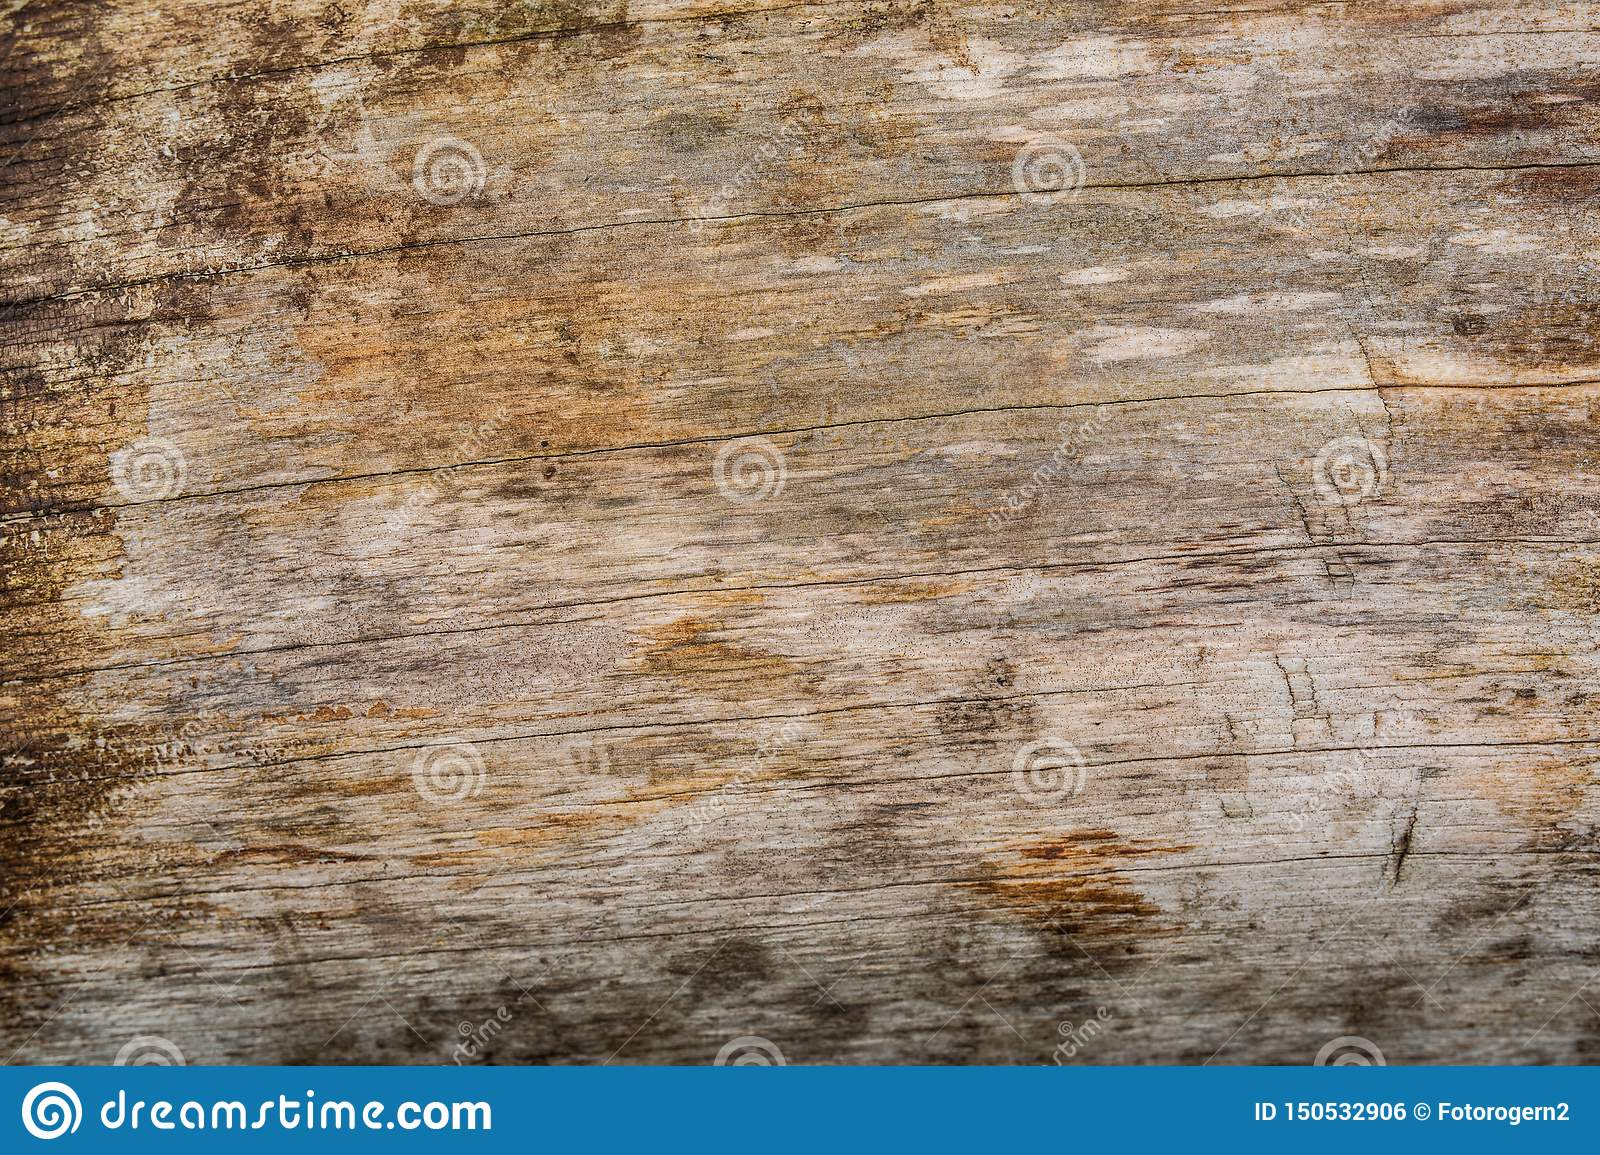 Wethered wood planks texture with scratched paint